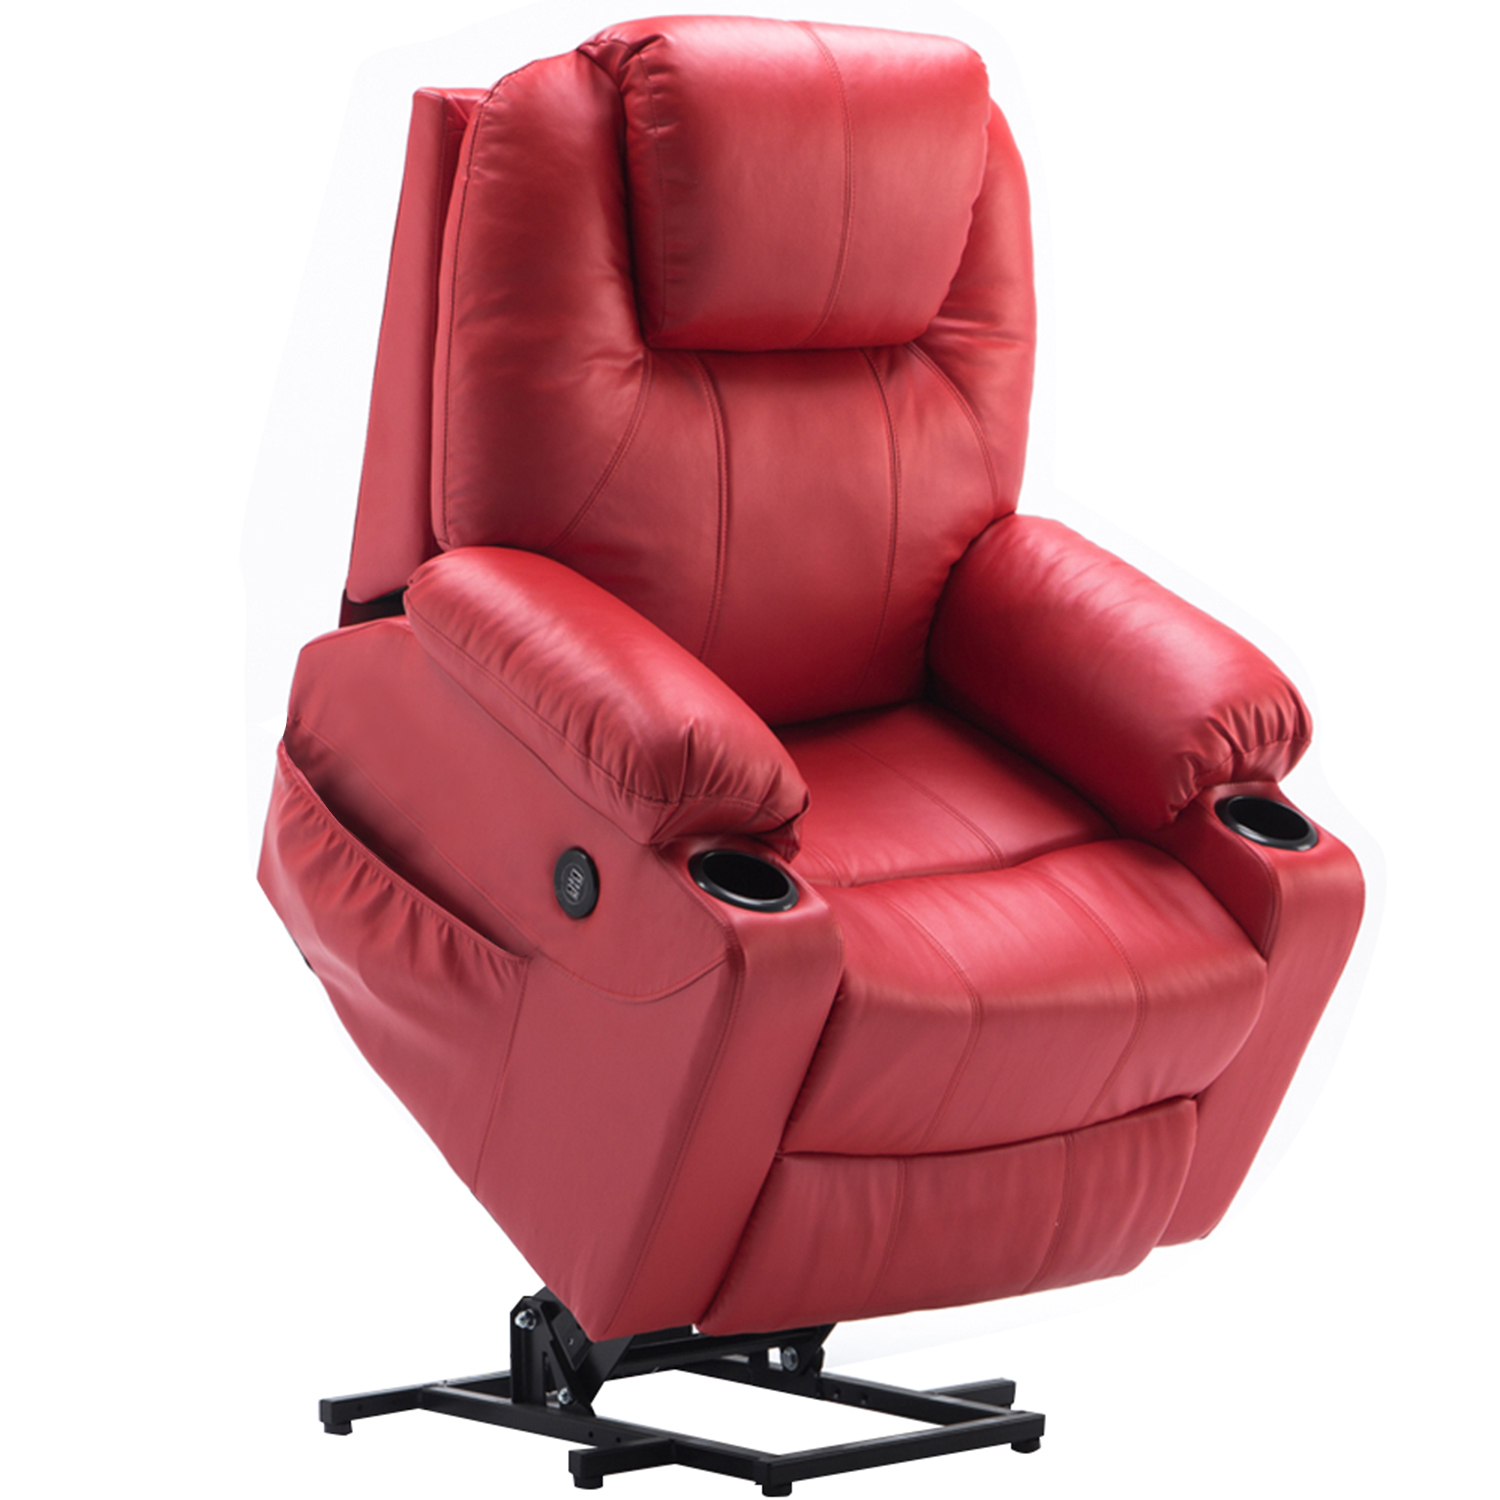 Product Image Electric Power Lift Chair Massage Sofa Recliner Heated Chair  Lounge W/Remote Control Dual USB